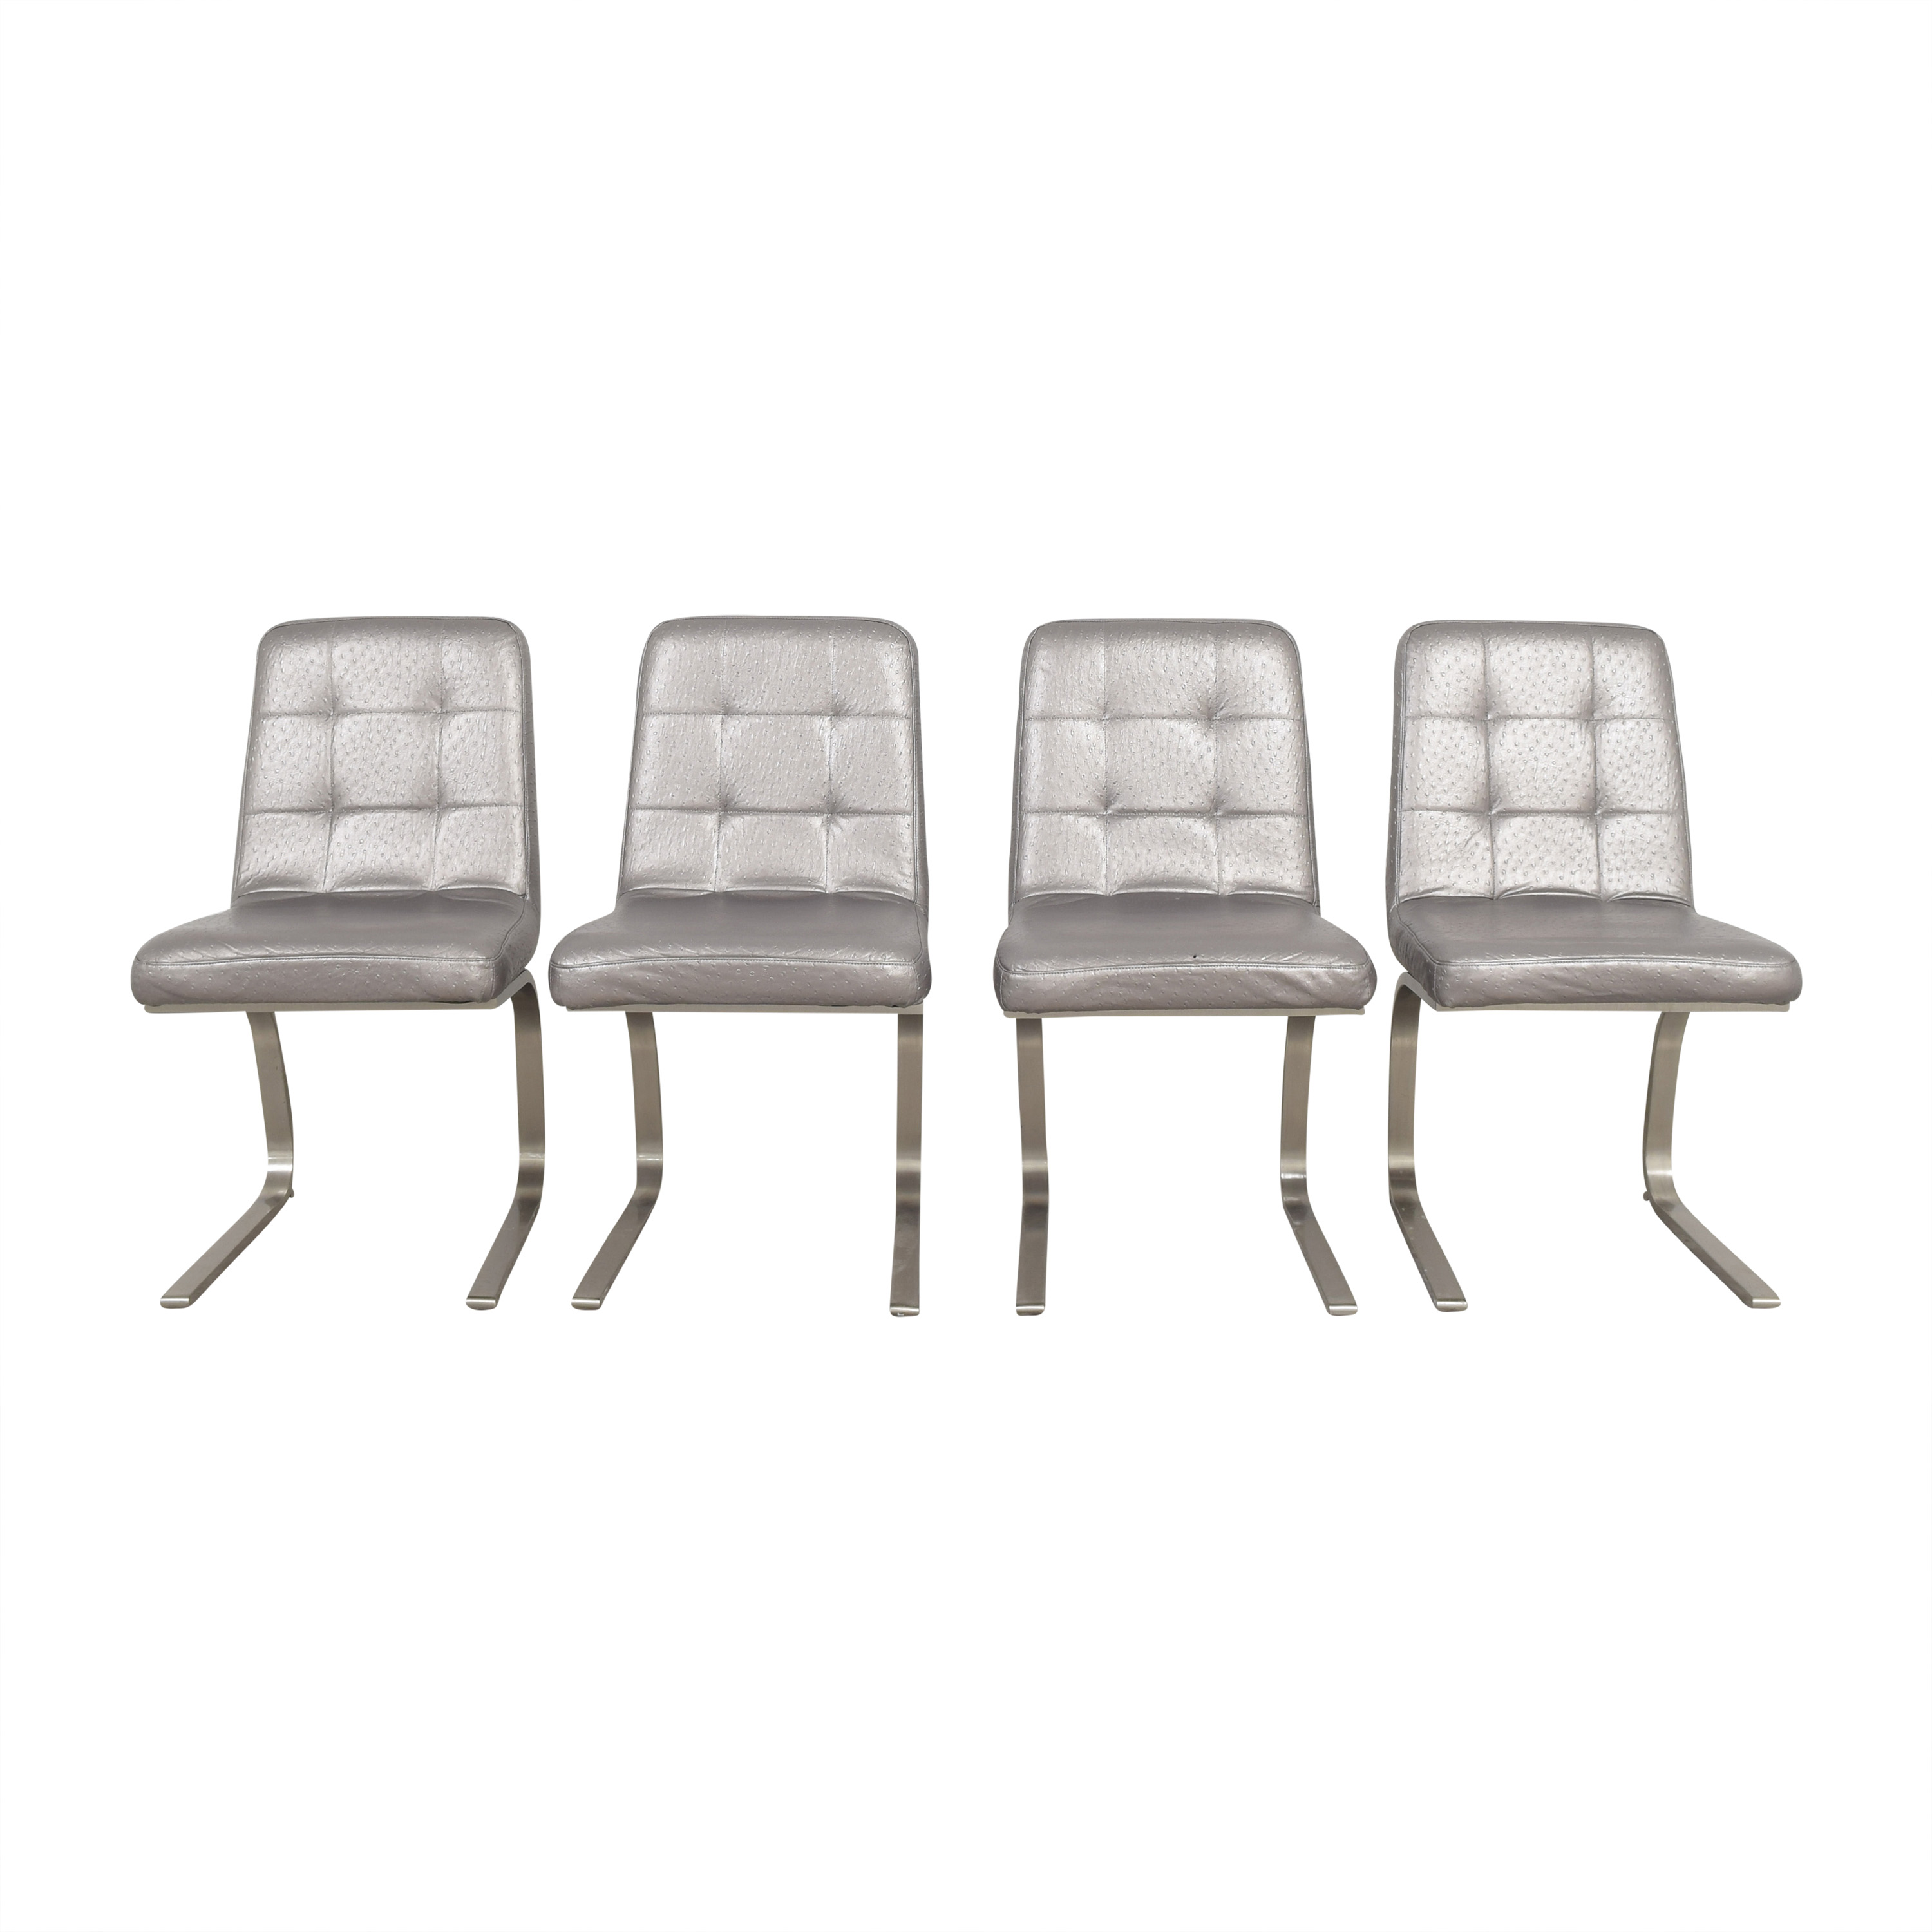 Decor NYC Decor NYC Tufted Embossed Dining Chairs dimensions